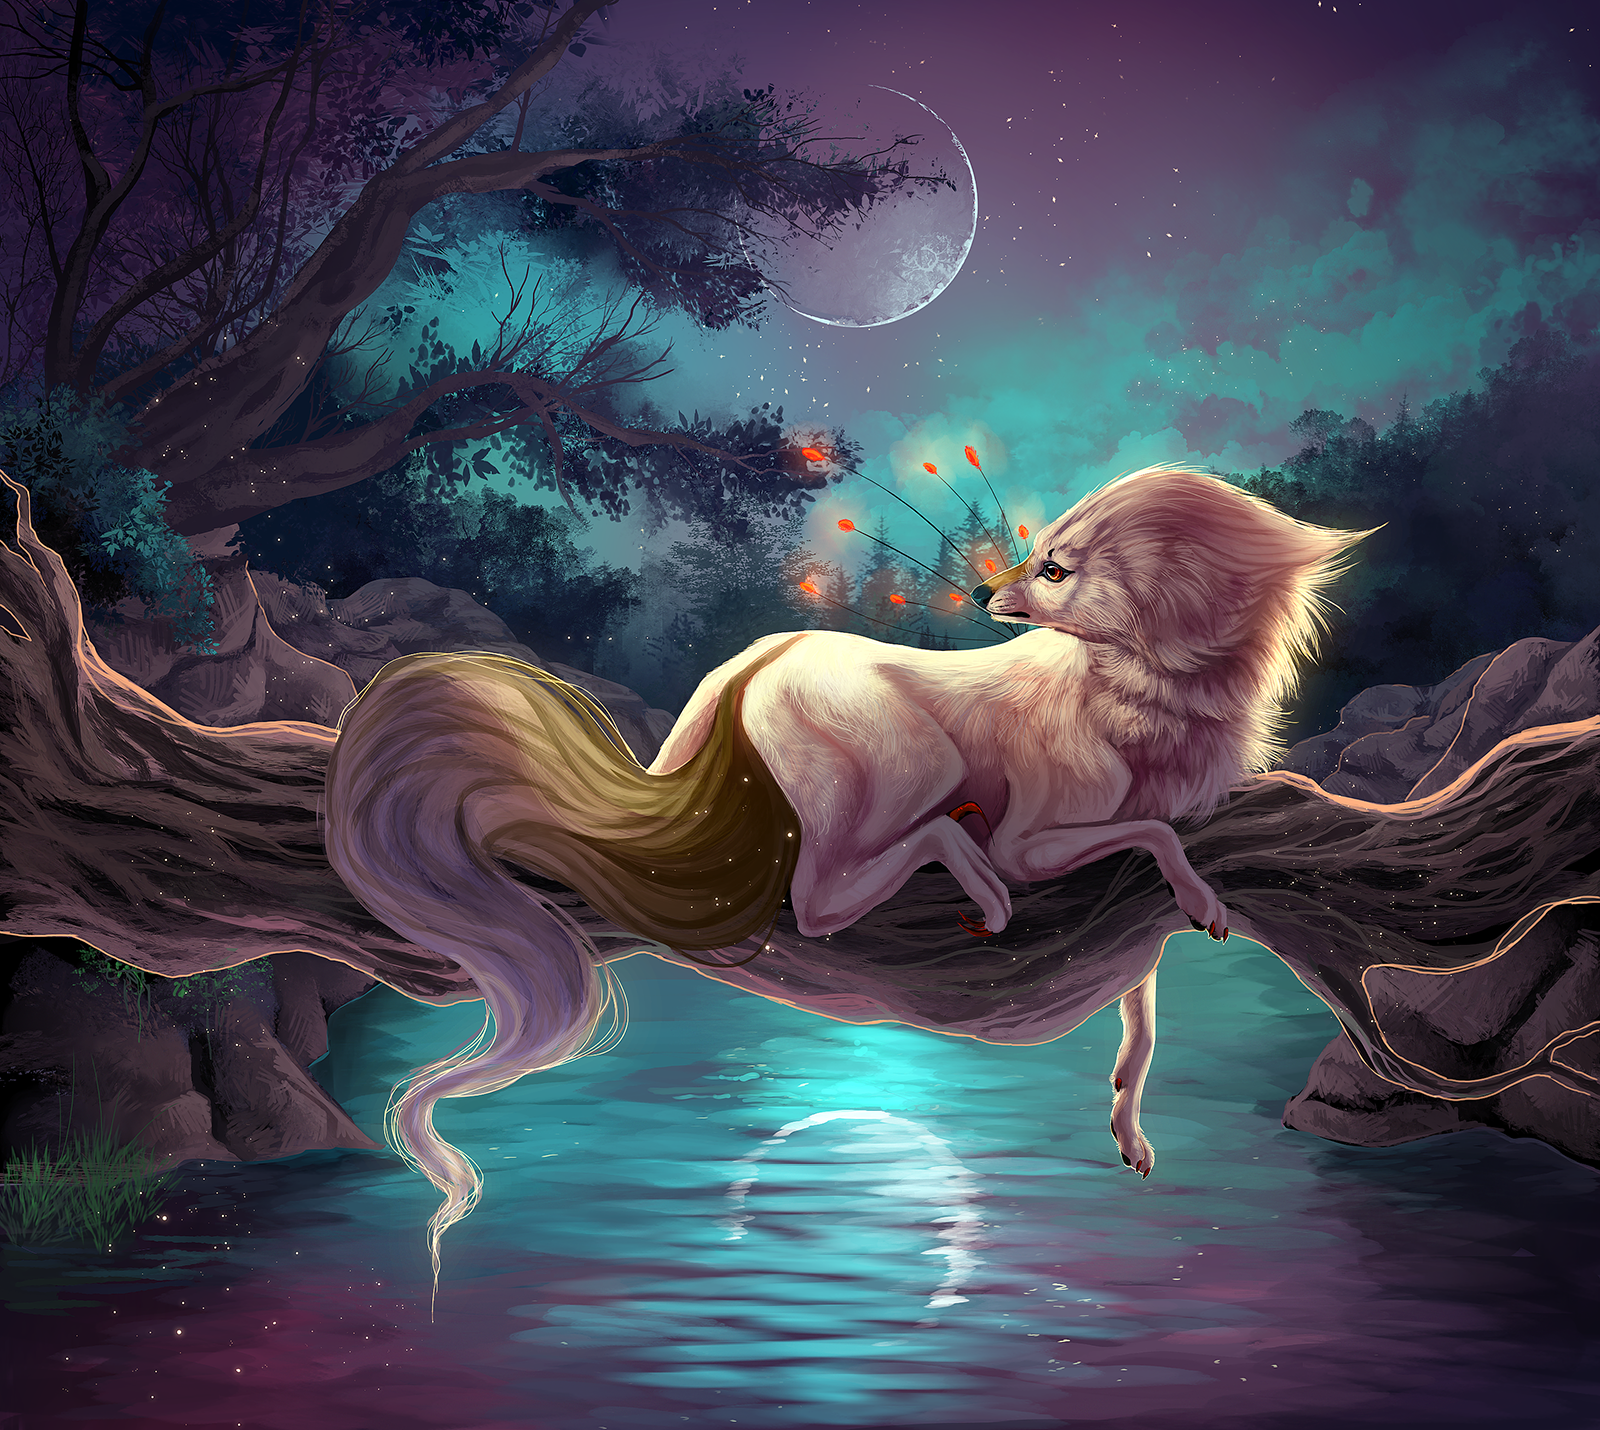 Goodnight Moon by Llassie